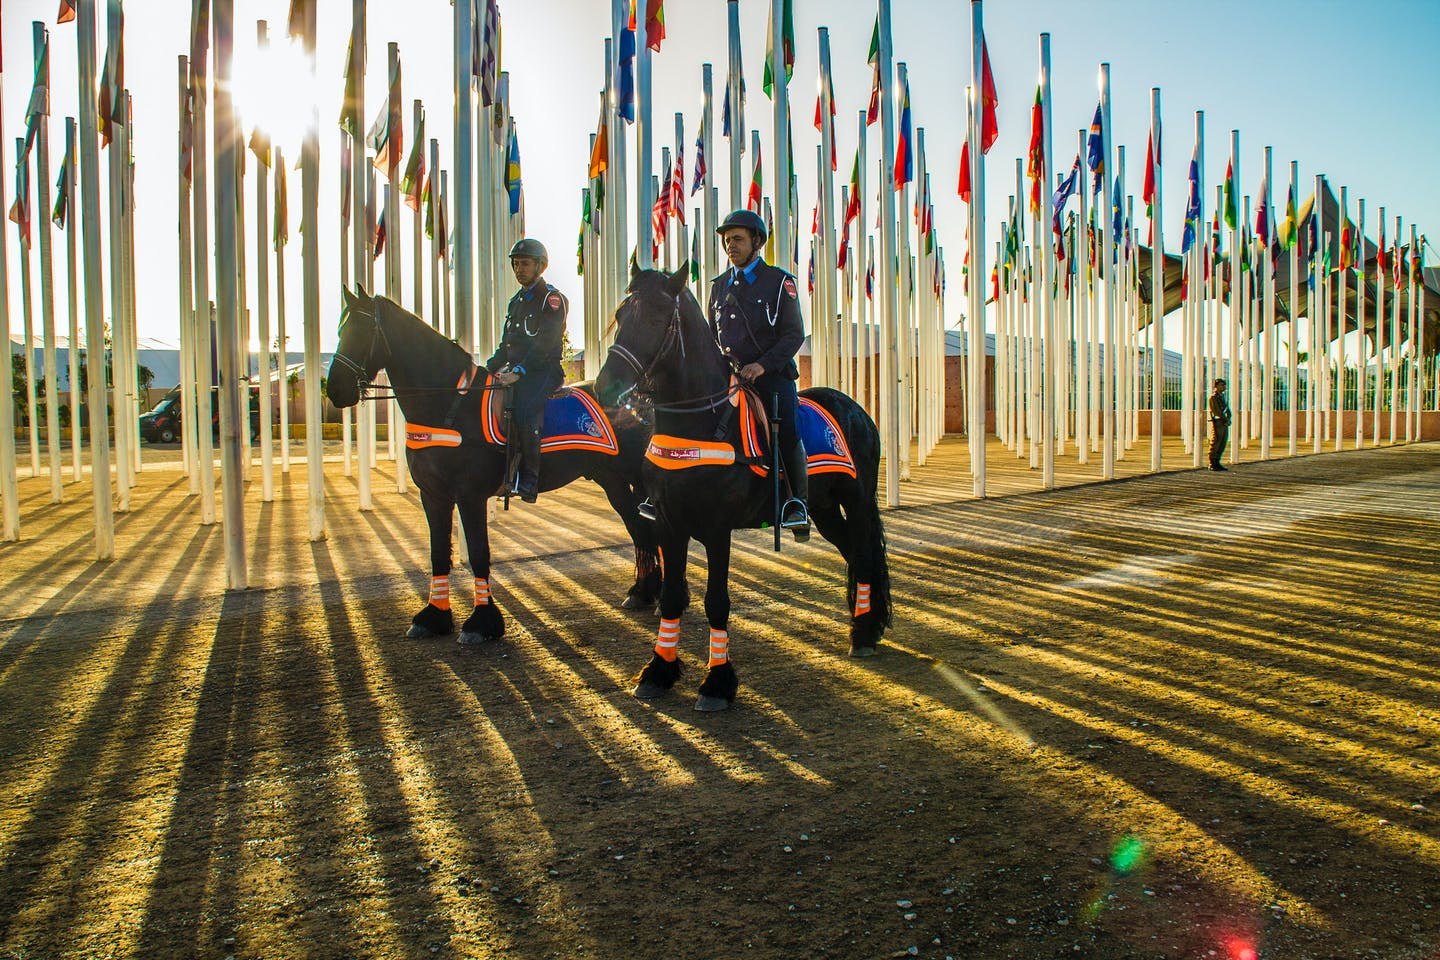 Security forces on horseback at COP22